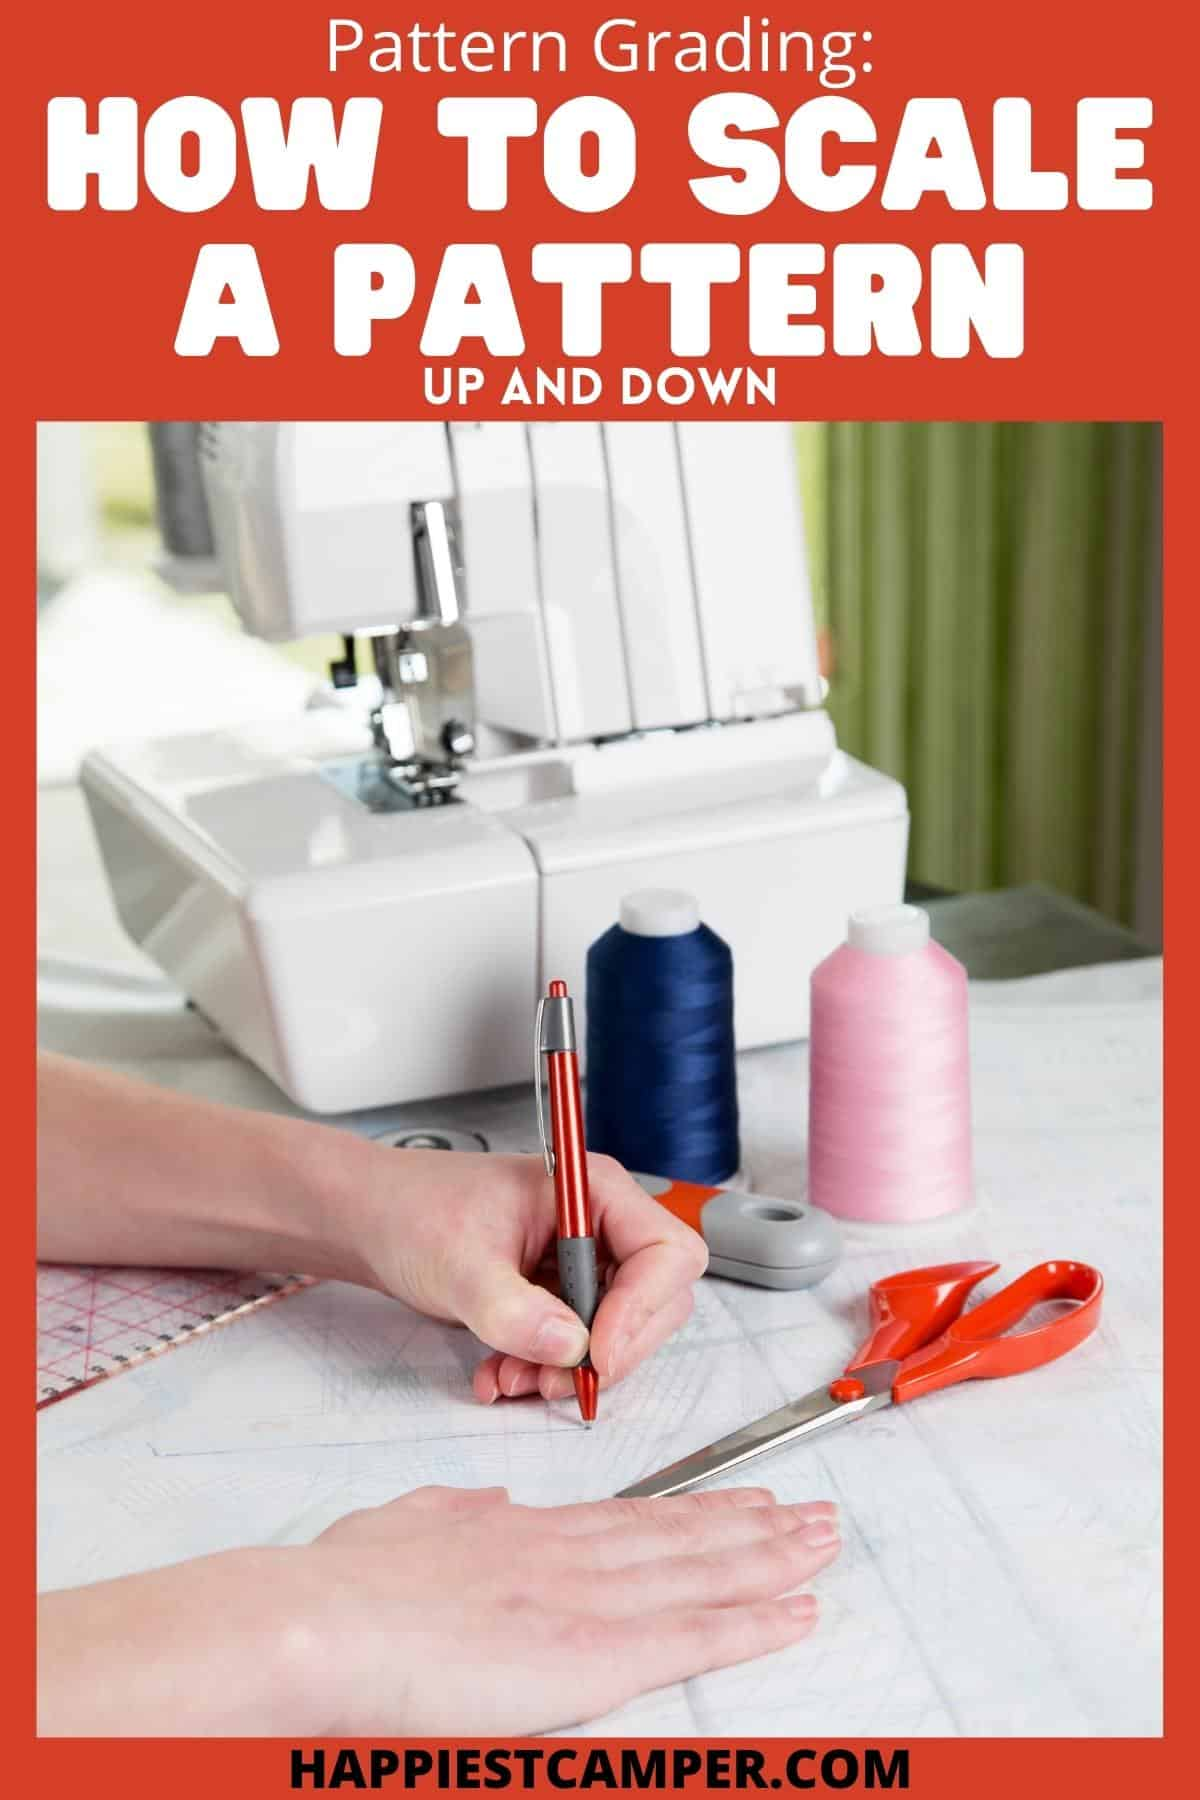 Pattern Grading - How To Scale A Pattern Up And Down